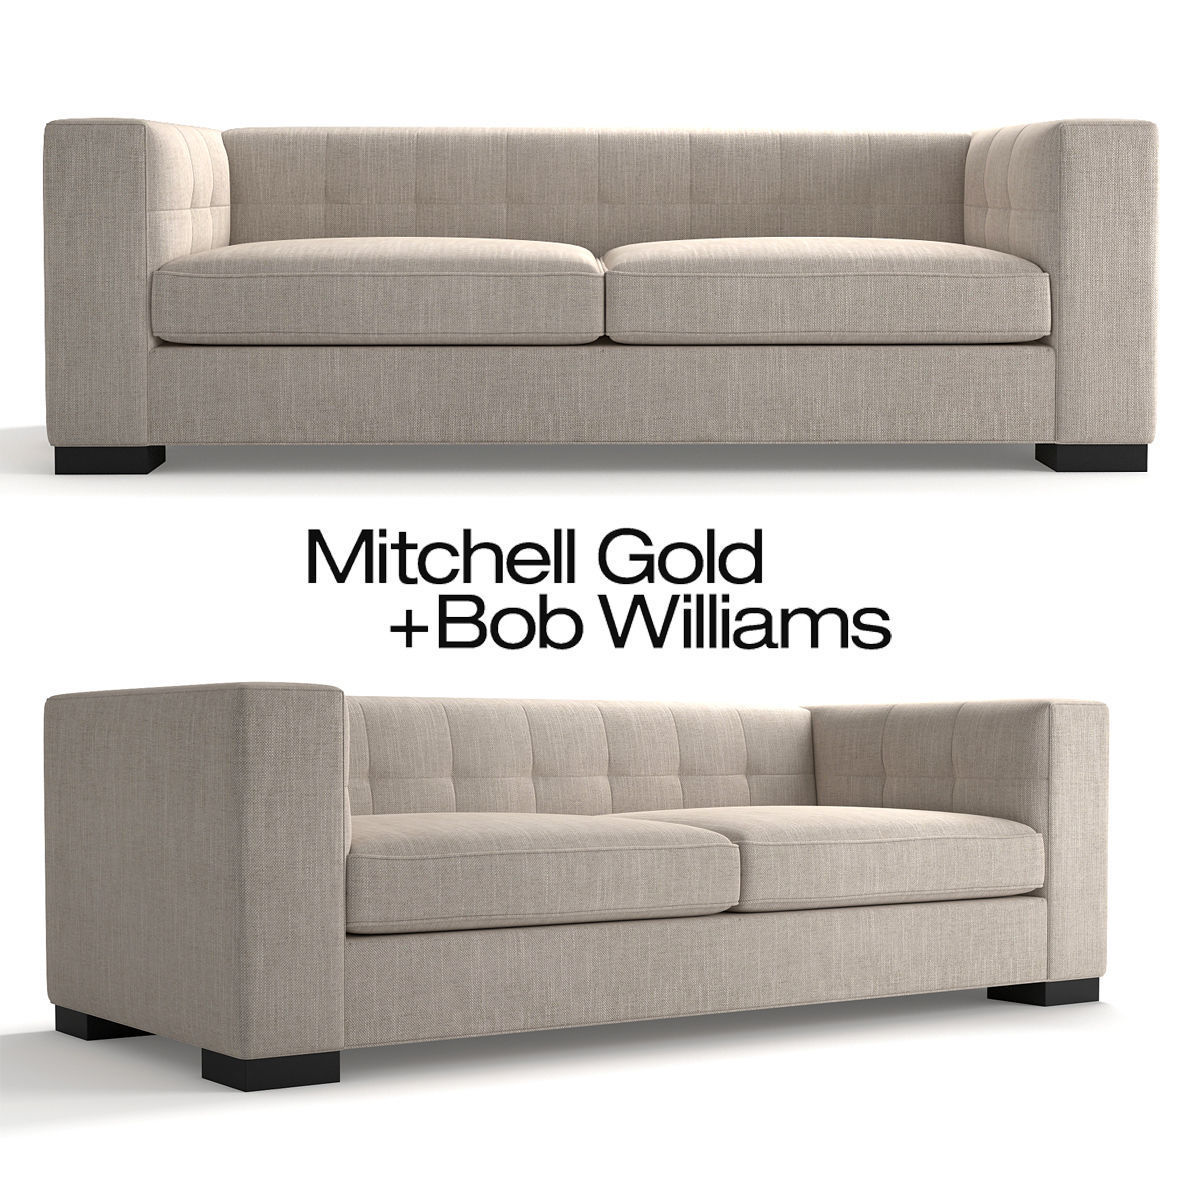 Stupendous Mitchell Gold Bronson Sofa 3D Model Gmtry Best Dining Table And Chair Ideas Images Gmtryco